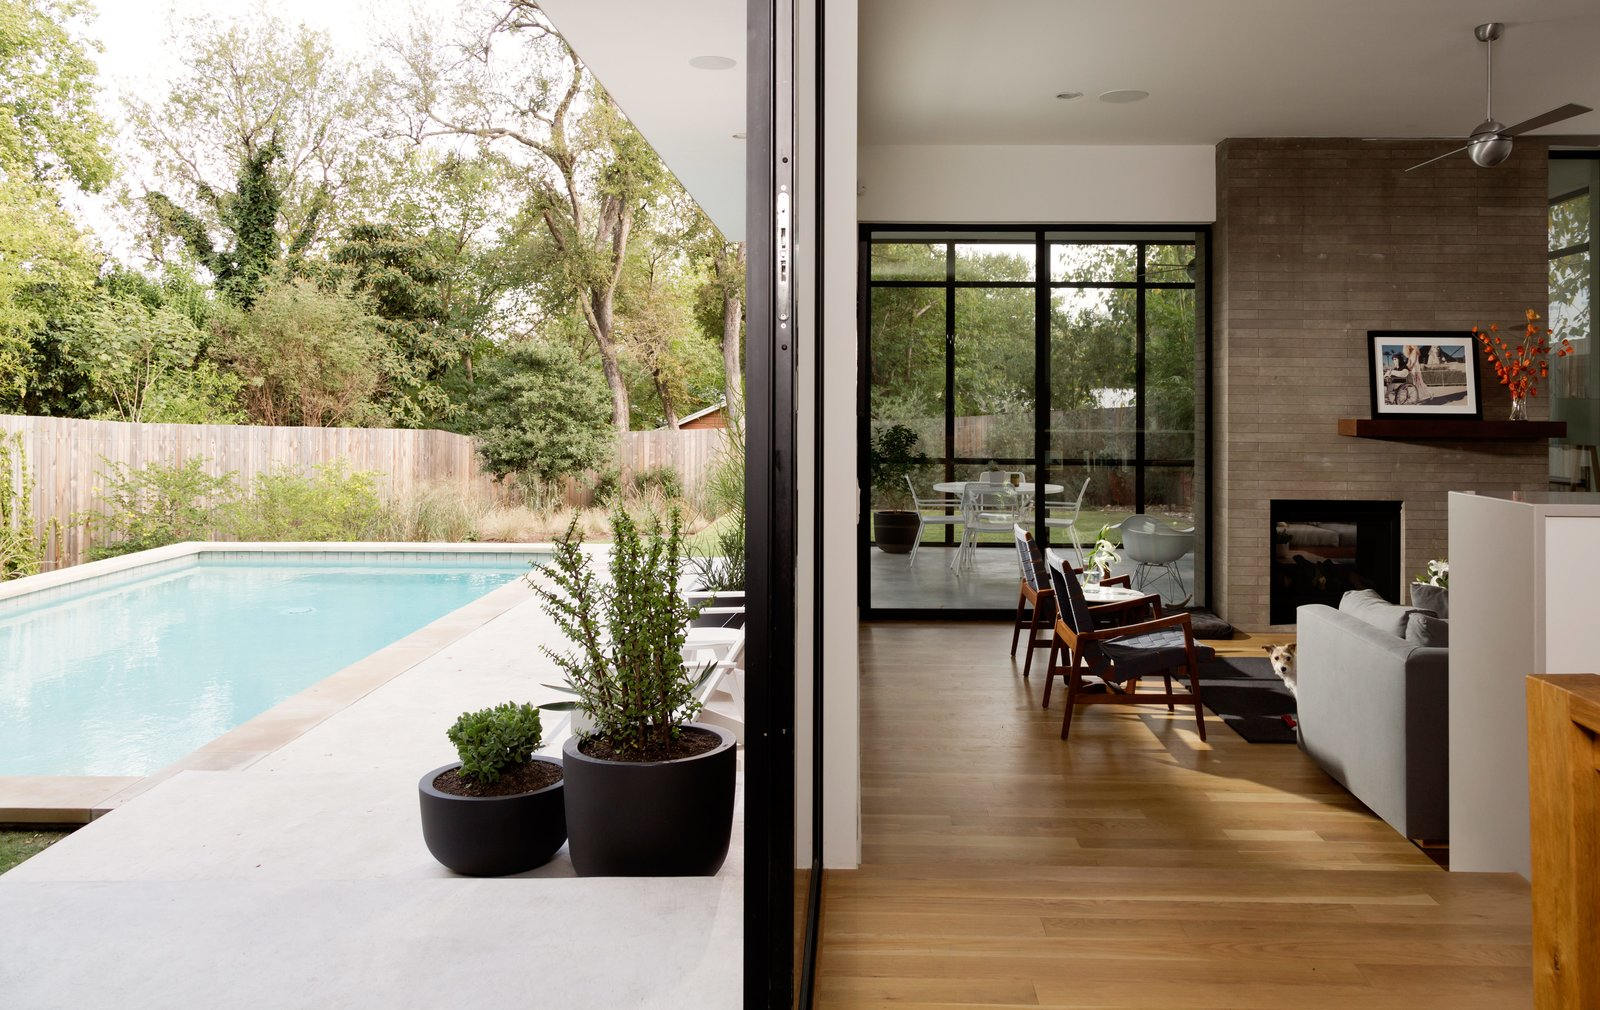 Outdoor, Large Pools, Tubs, Shower, Concrete Pools, Tubs, Shower, and Swimming Pools, Tubs, Shower A double-sided fireplace serves as a way to unite the screened-in porch to the house's main, open-plan living area.  Photo 4 of 6 in Refreshed Take on the Gable Shines in Austin's Building Boom